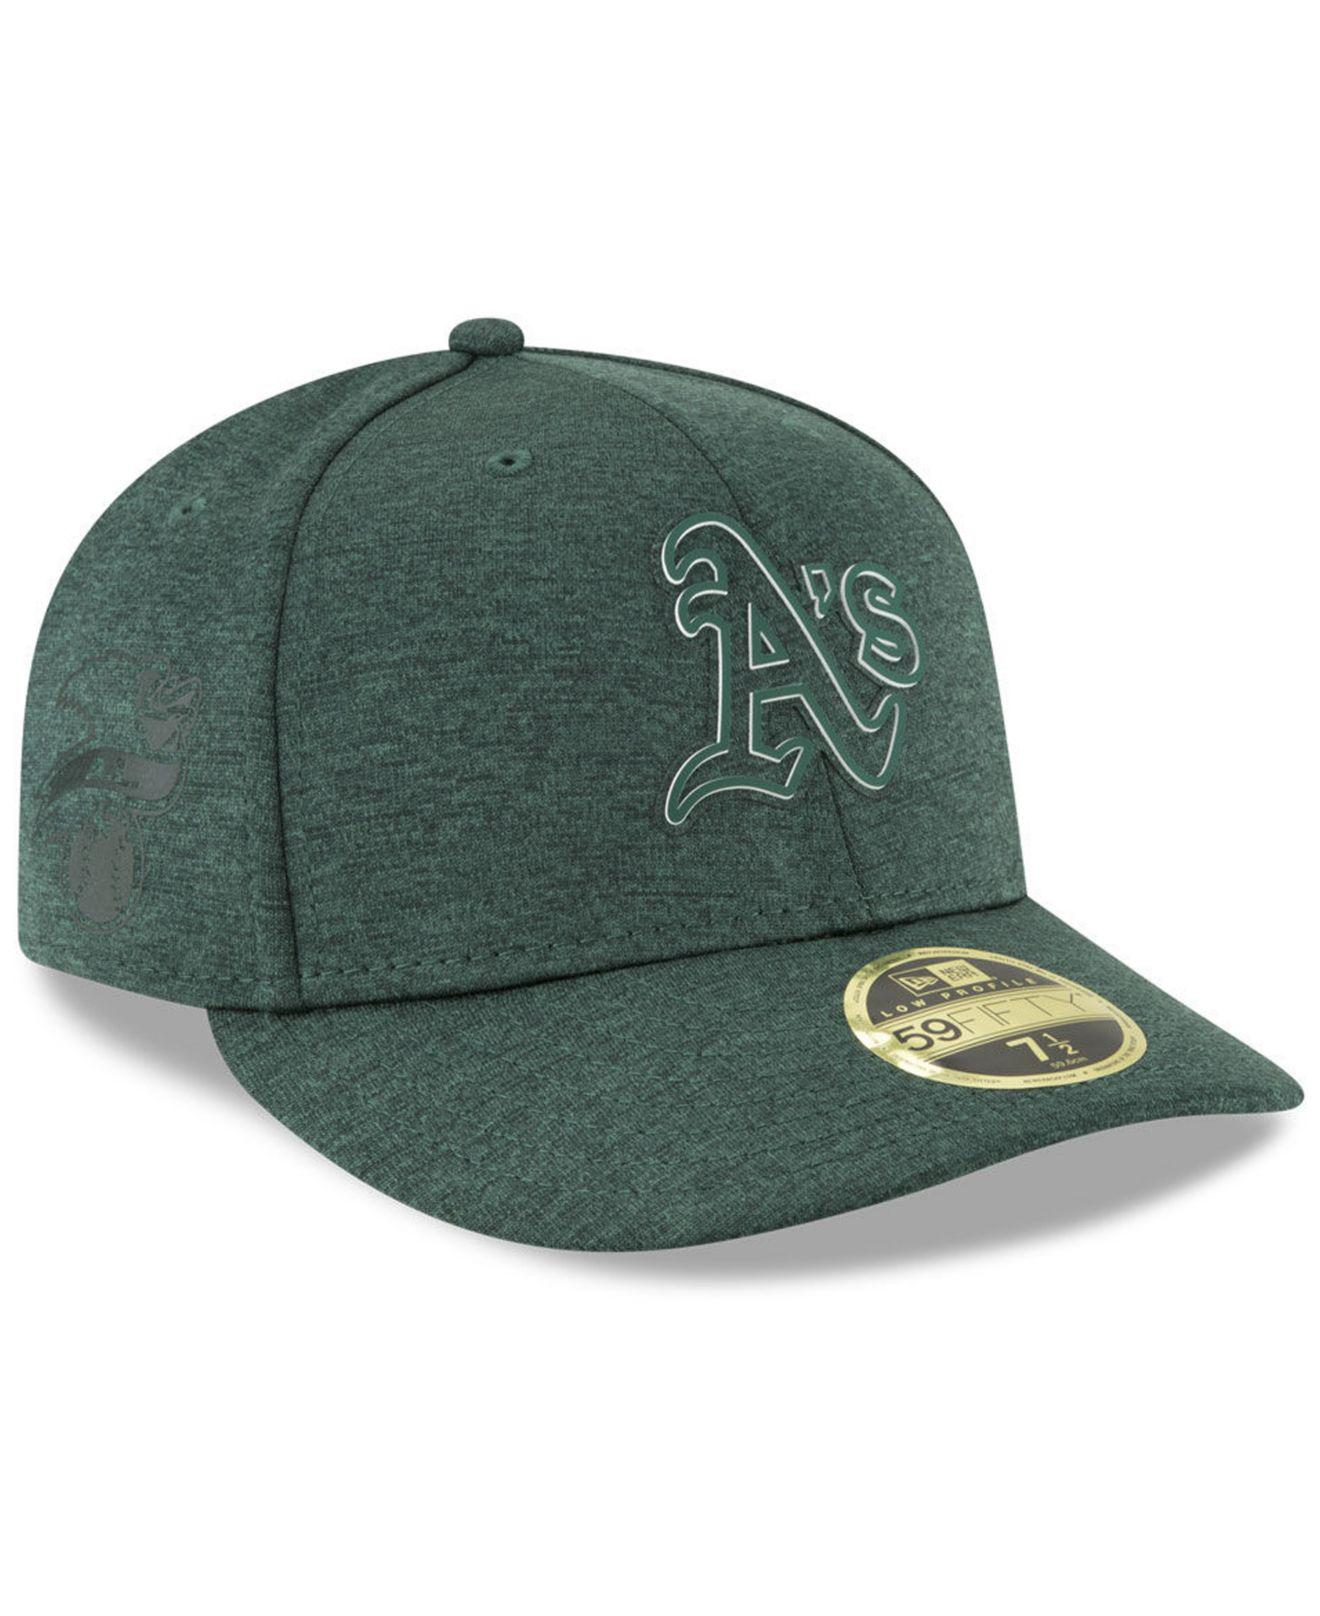 KTZ. Men s Green Oakland Athletics Clubhouse Low Crown 59fifty Fitted Cap 10944b06c3b6